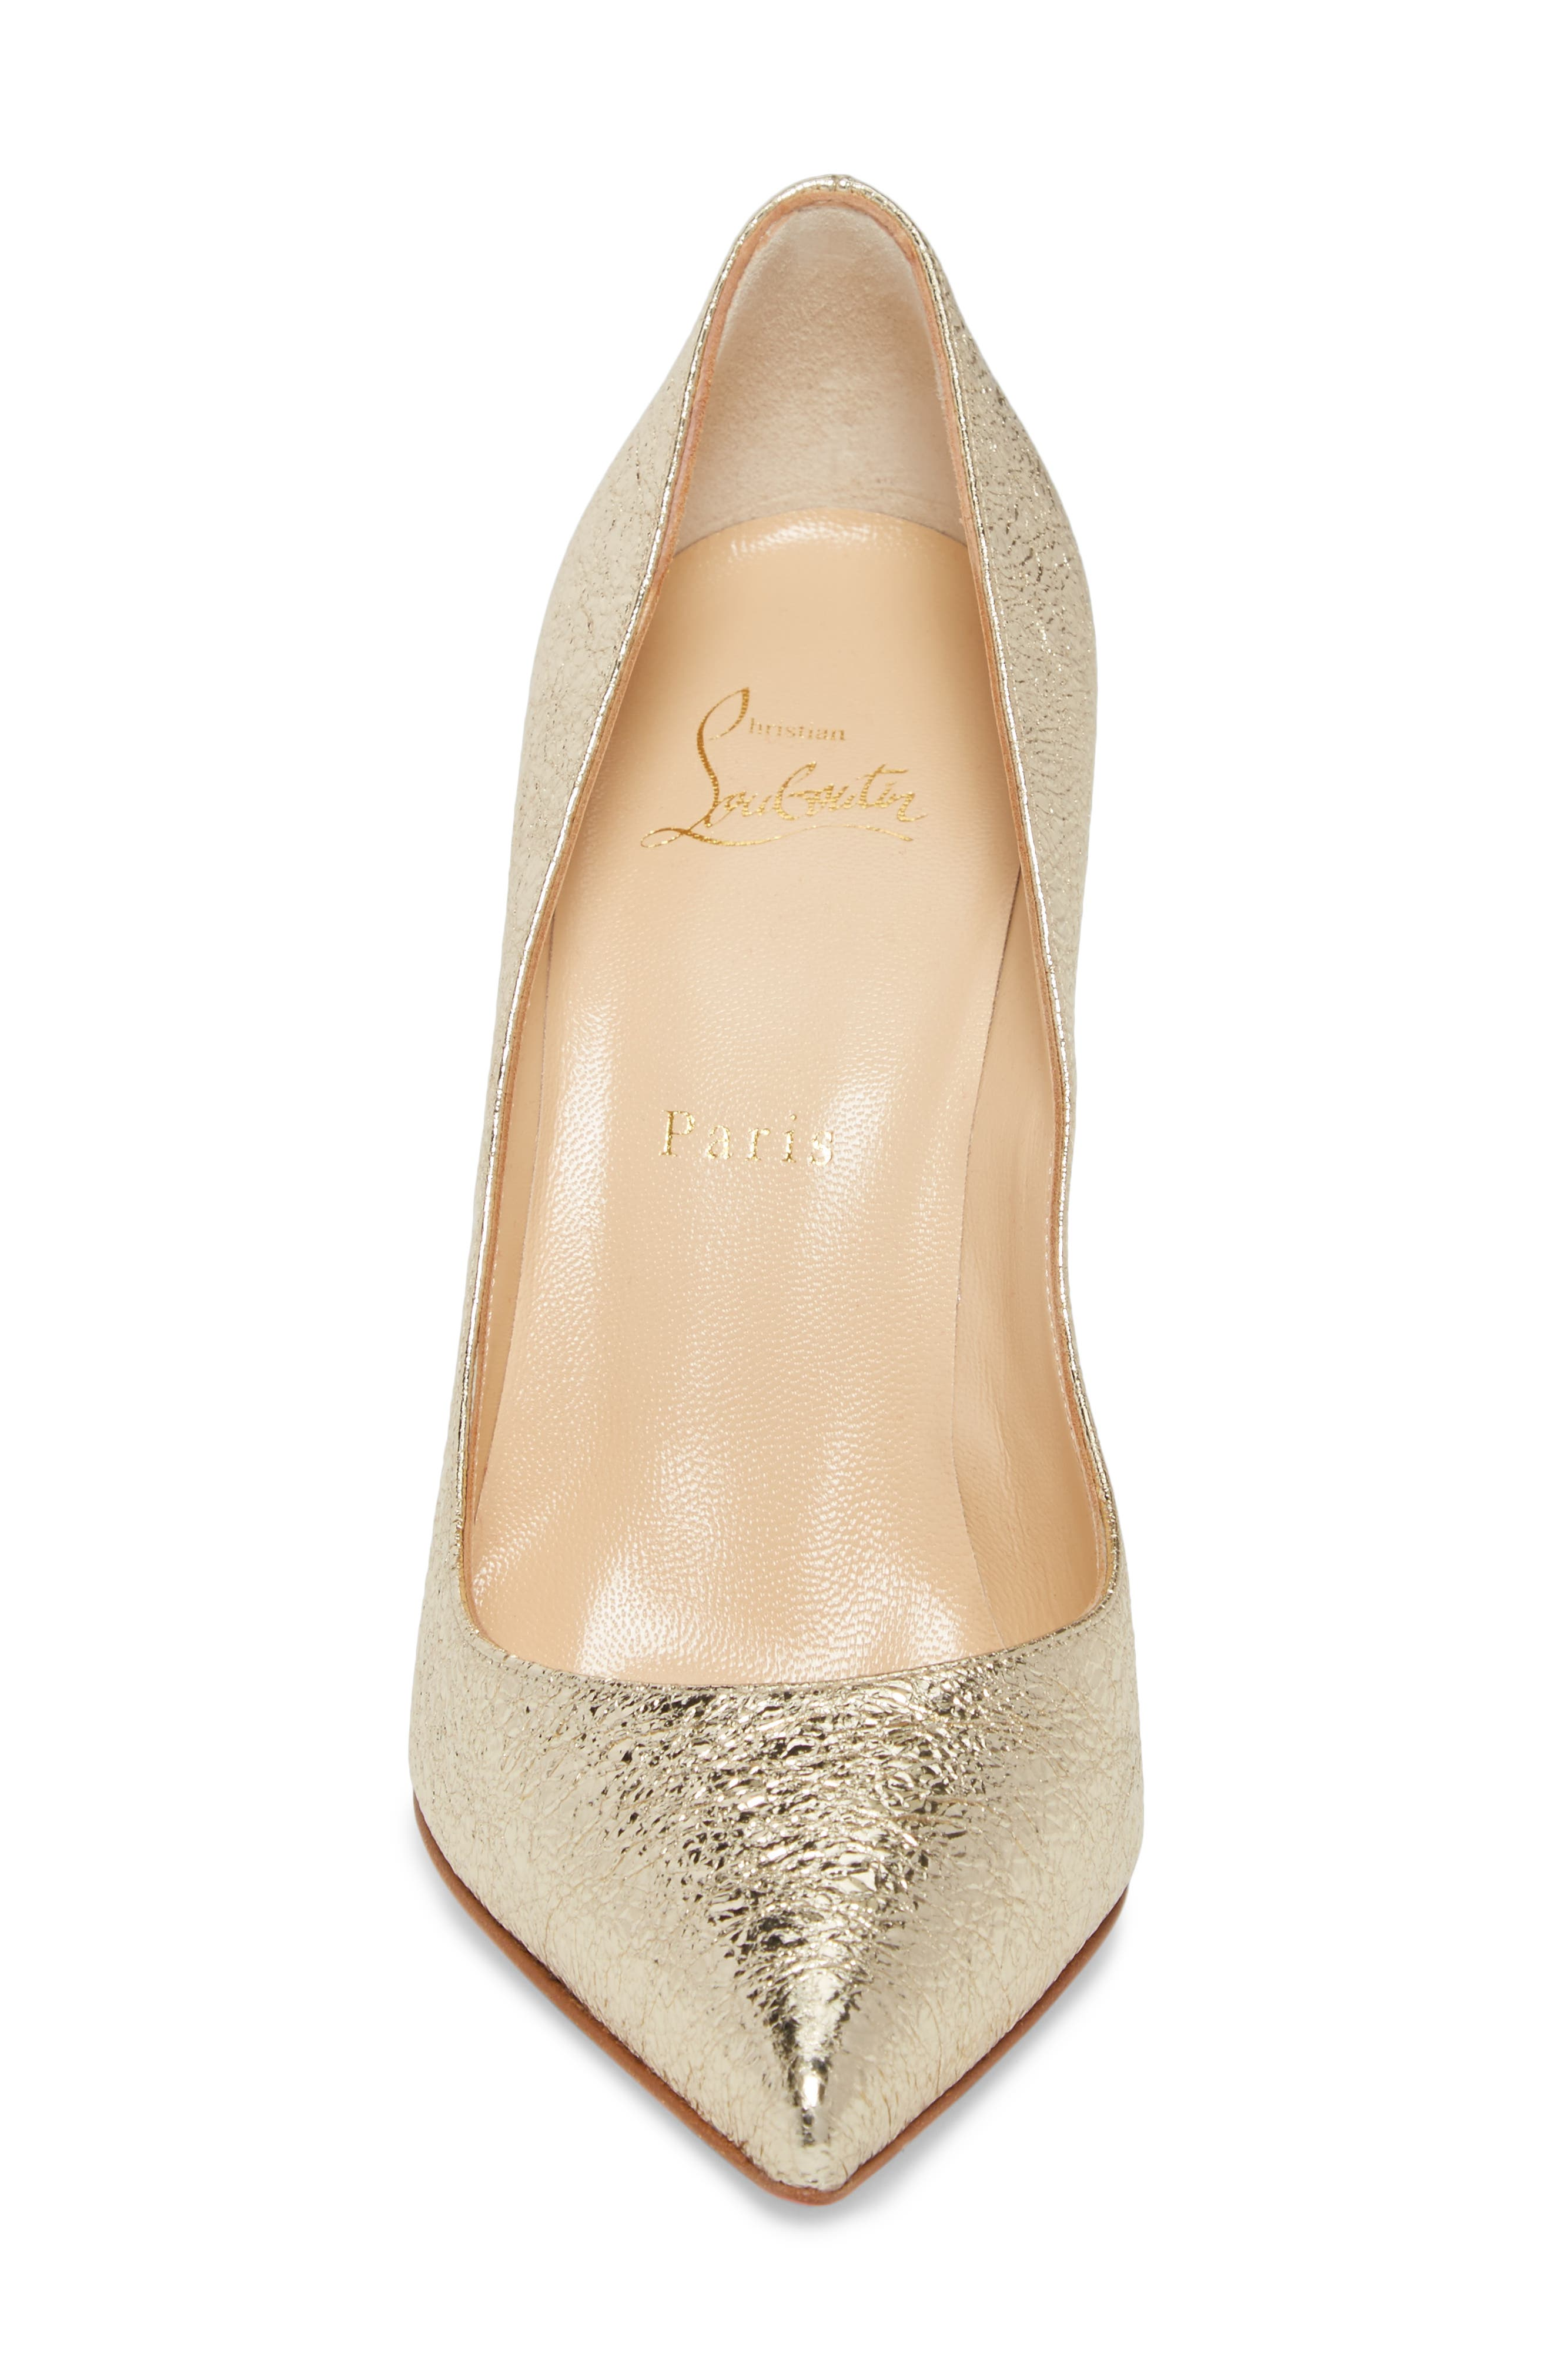 Pigalle Follies Pointy Toe Pump,                             Alternate thumbnail 4, color,                             040